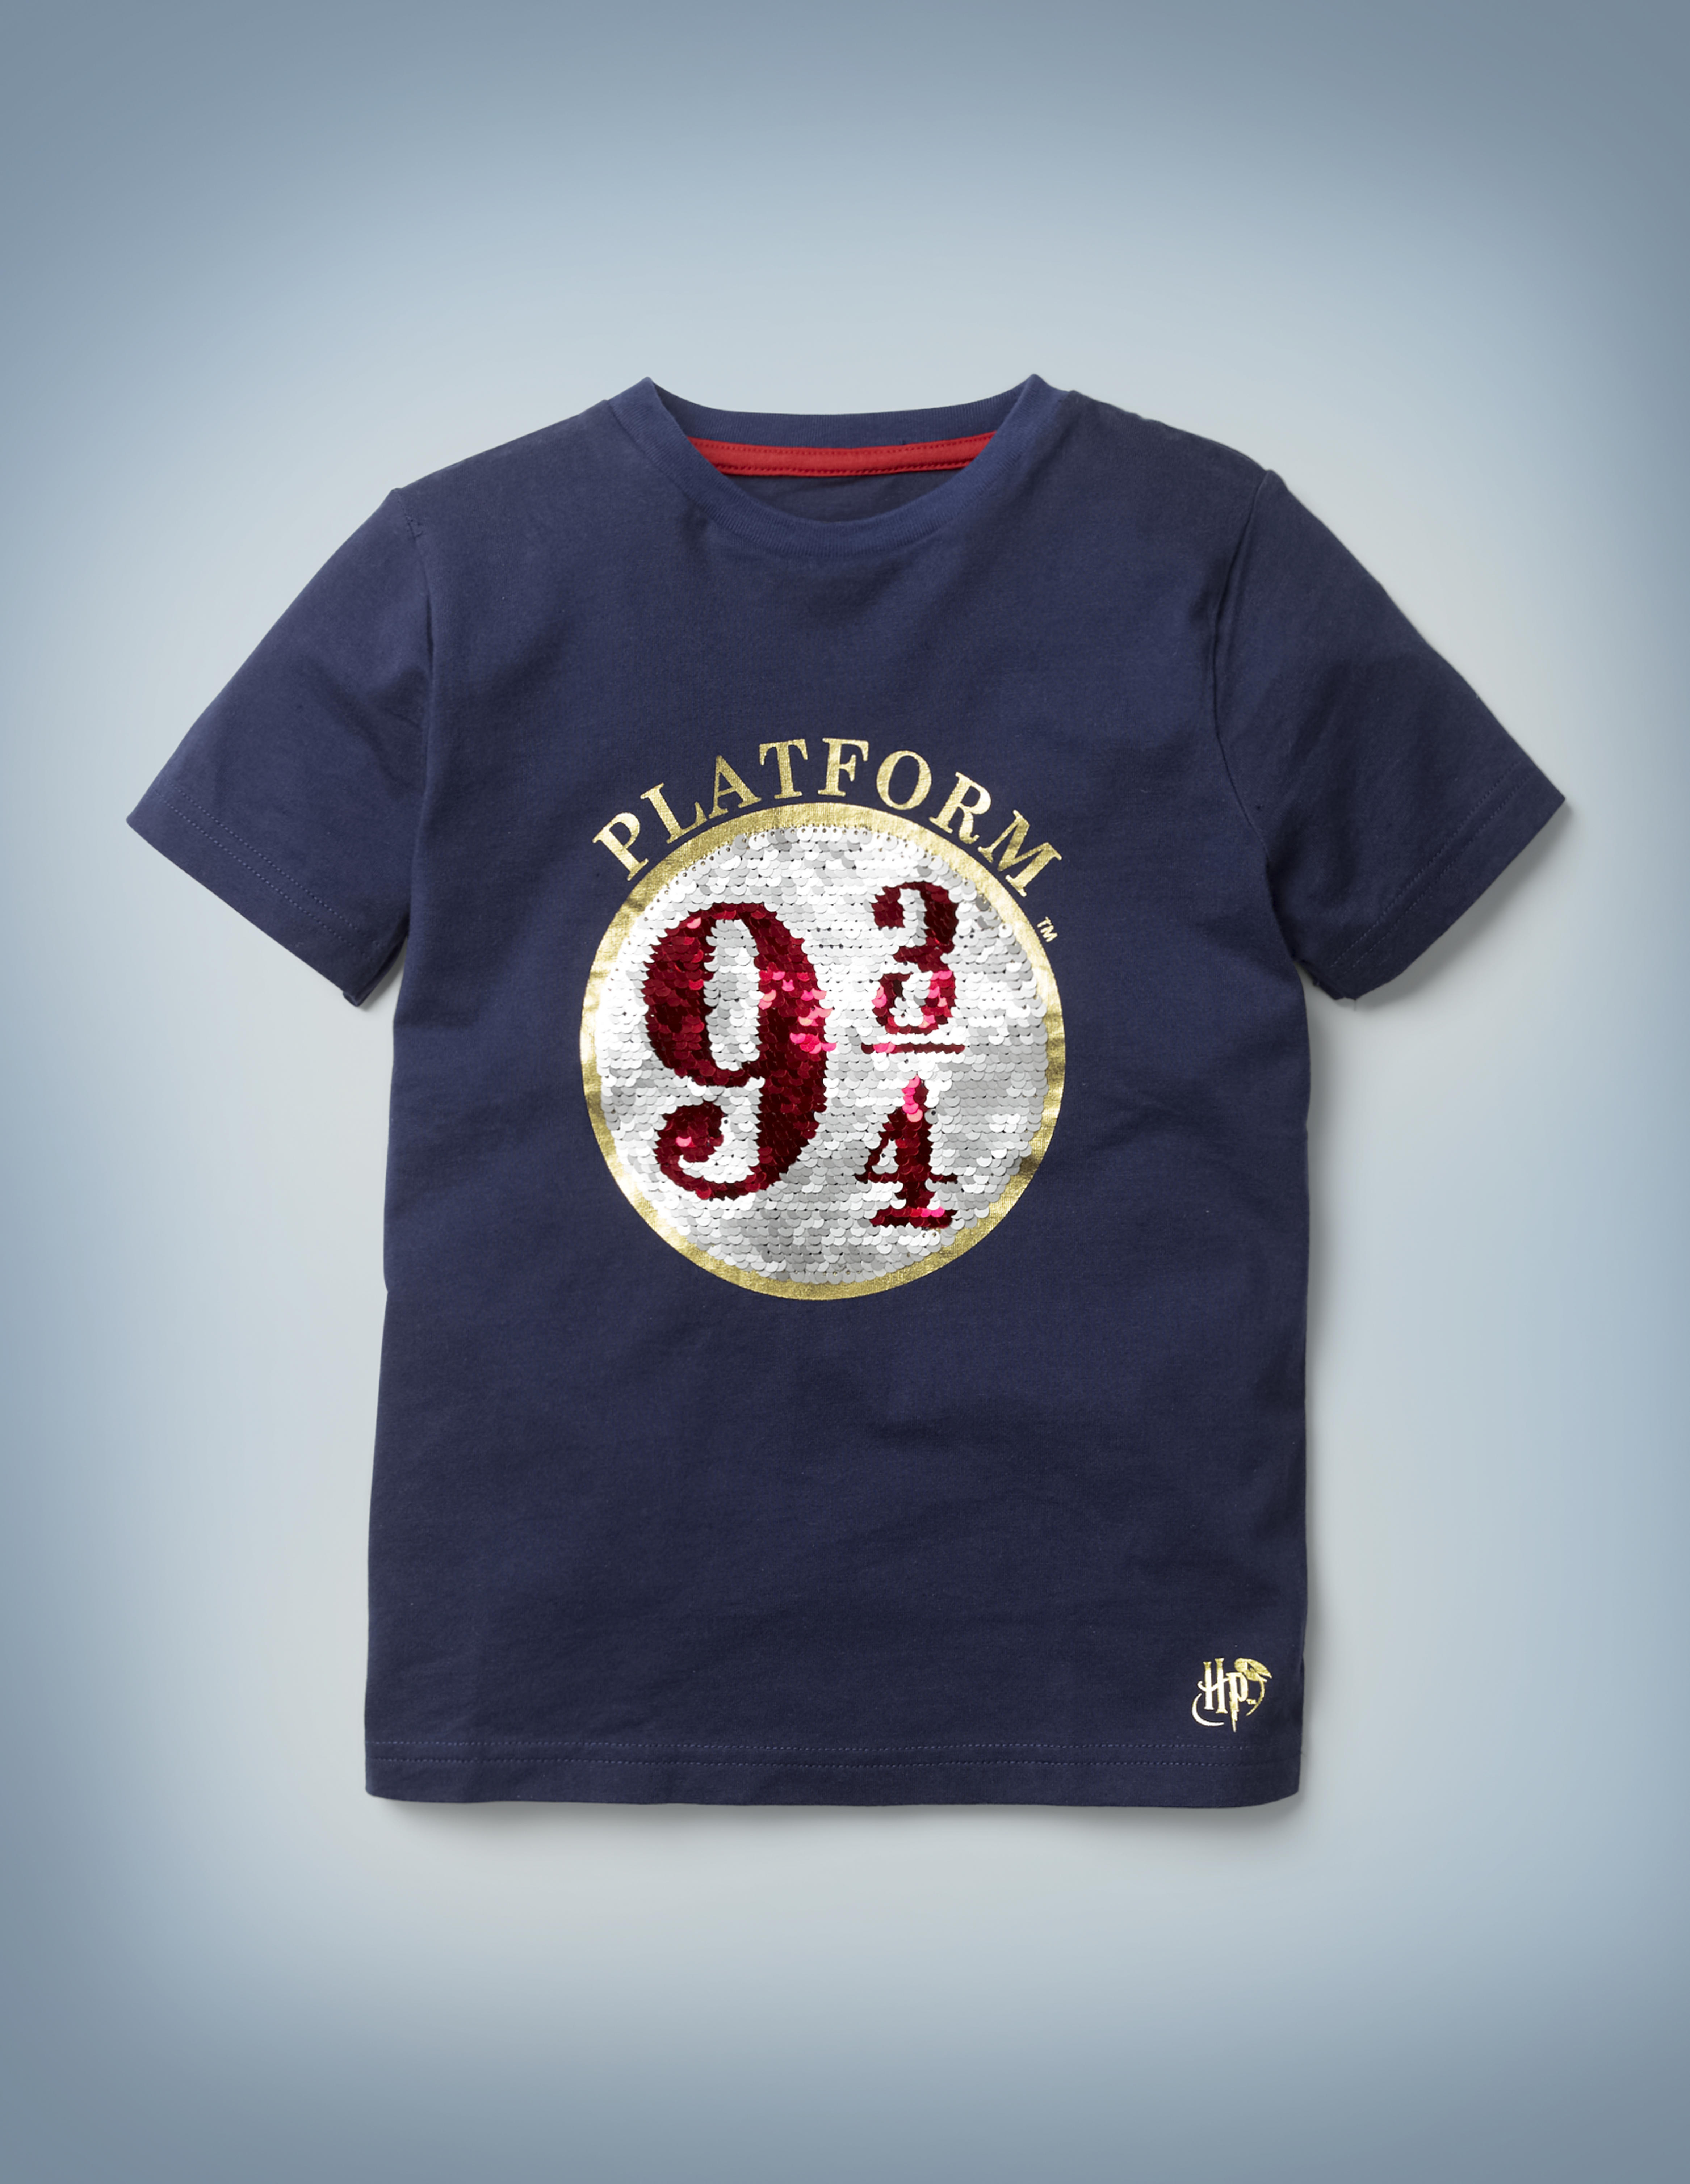 The Mini Boden Platform 9 ¾  Sequin T-shirt in blue features an eye-catching graphic of the circular 9 ¾ sign in silver and red sequins. It retails between £20 and £22.